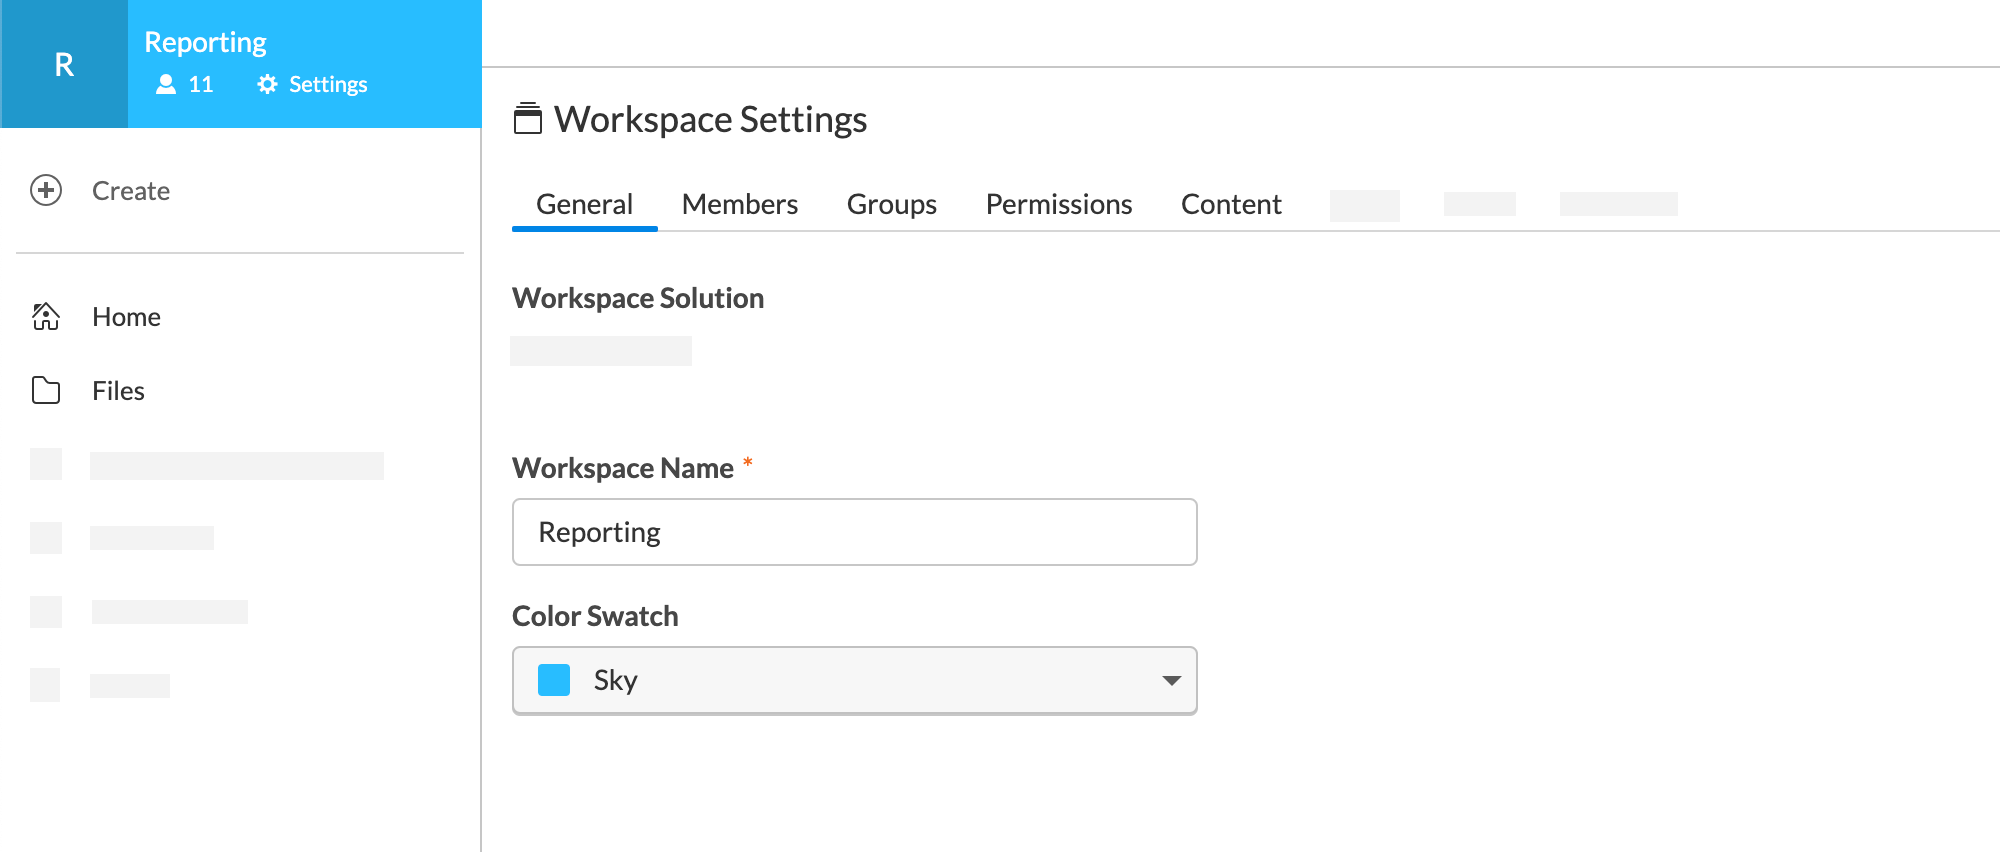 Workspae Settings